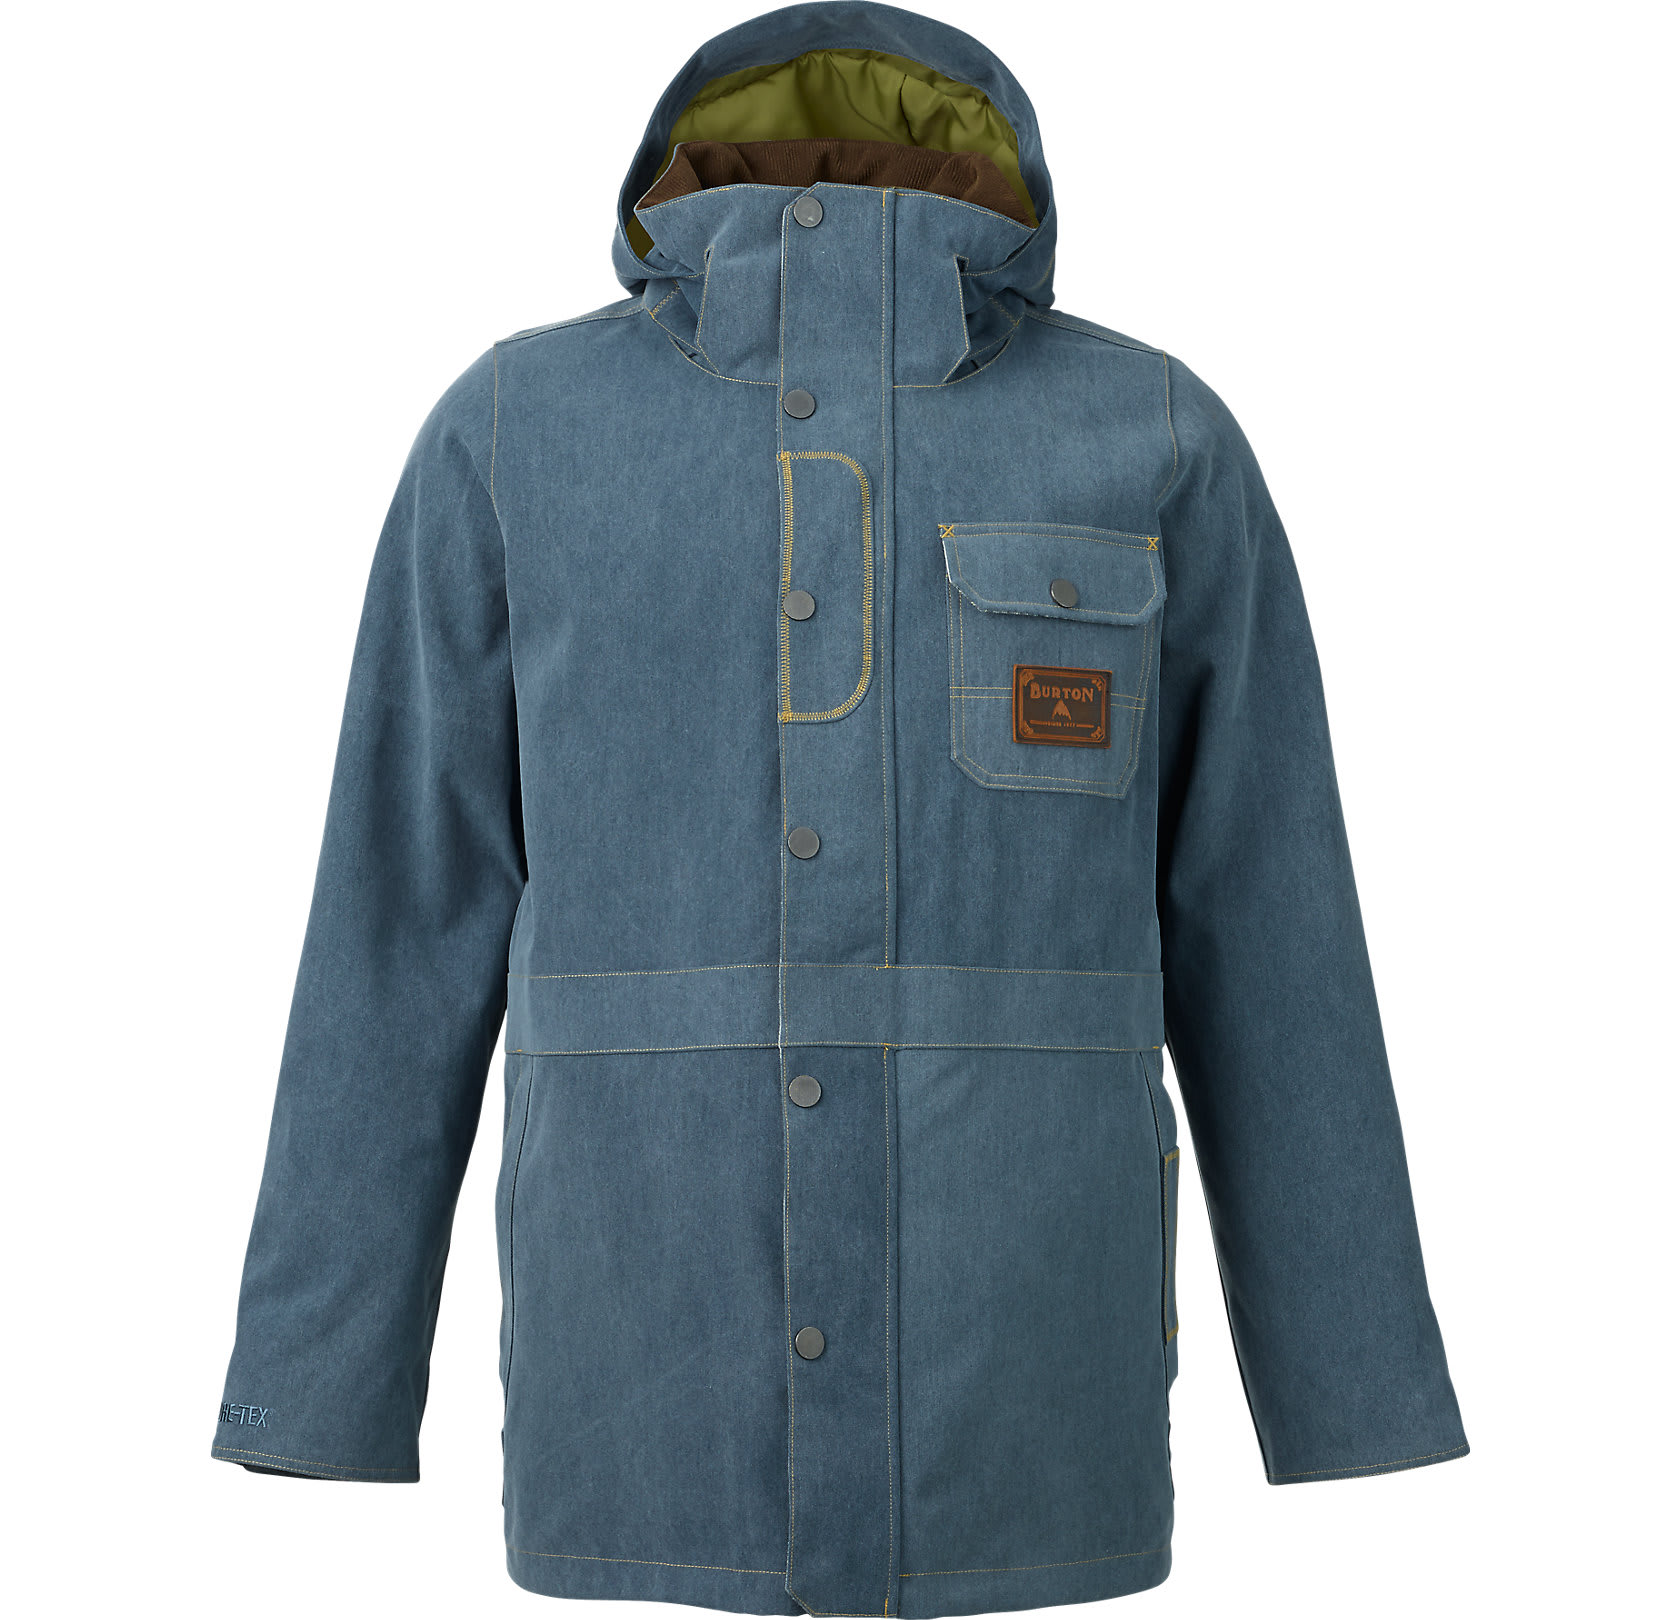 on sale burton dune gore tex snowboard jacket up to 40 off. Black Bedroom Furniture Sets. Home Design Ideas